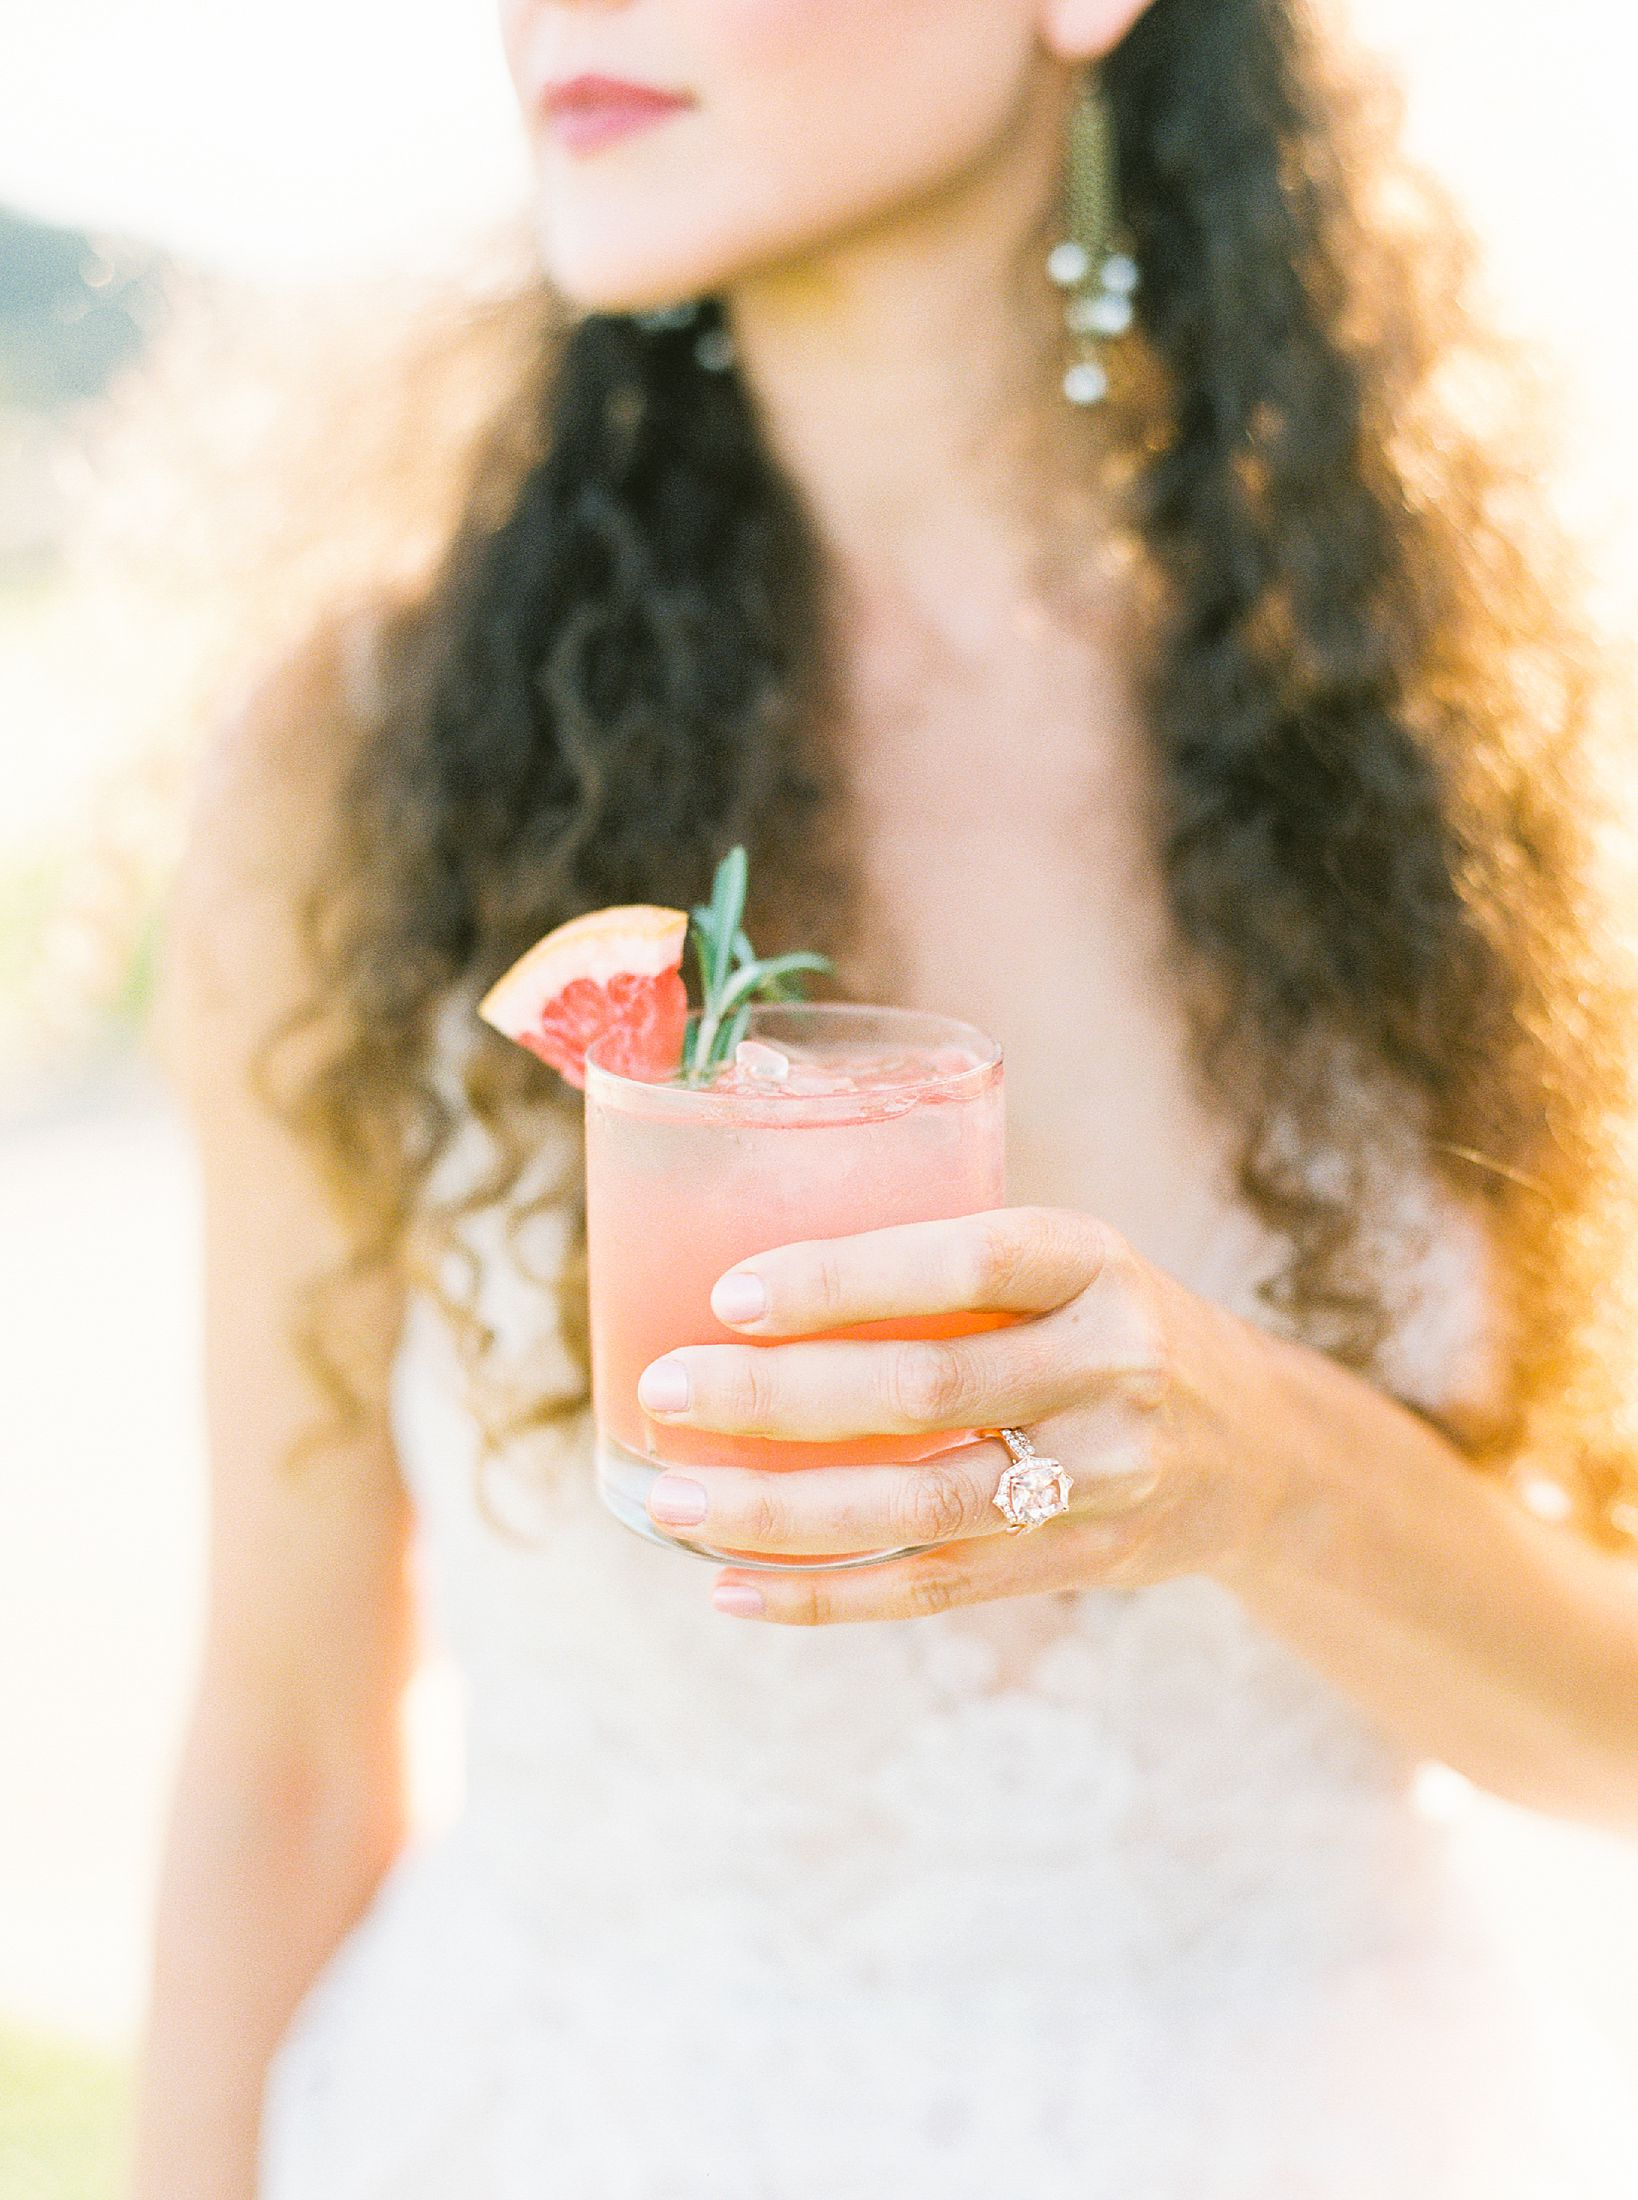 White Barn Edna Valley Wedding Inspiration - San Luis Obispo Wedding - Featured on Green Wedding Shoes - Ashley Baumgartner - FM Events SLO - SLO Wedding Photographer_0040.jpg